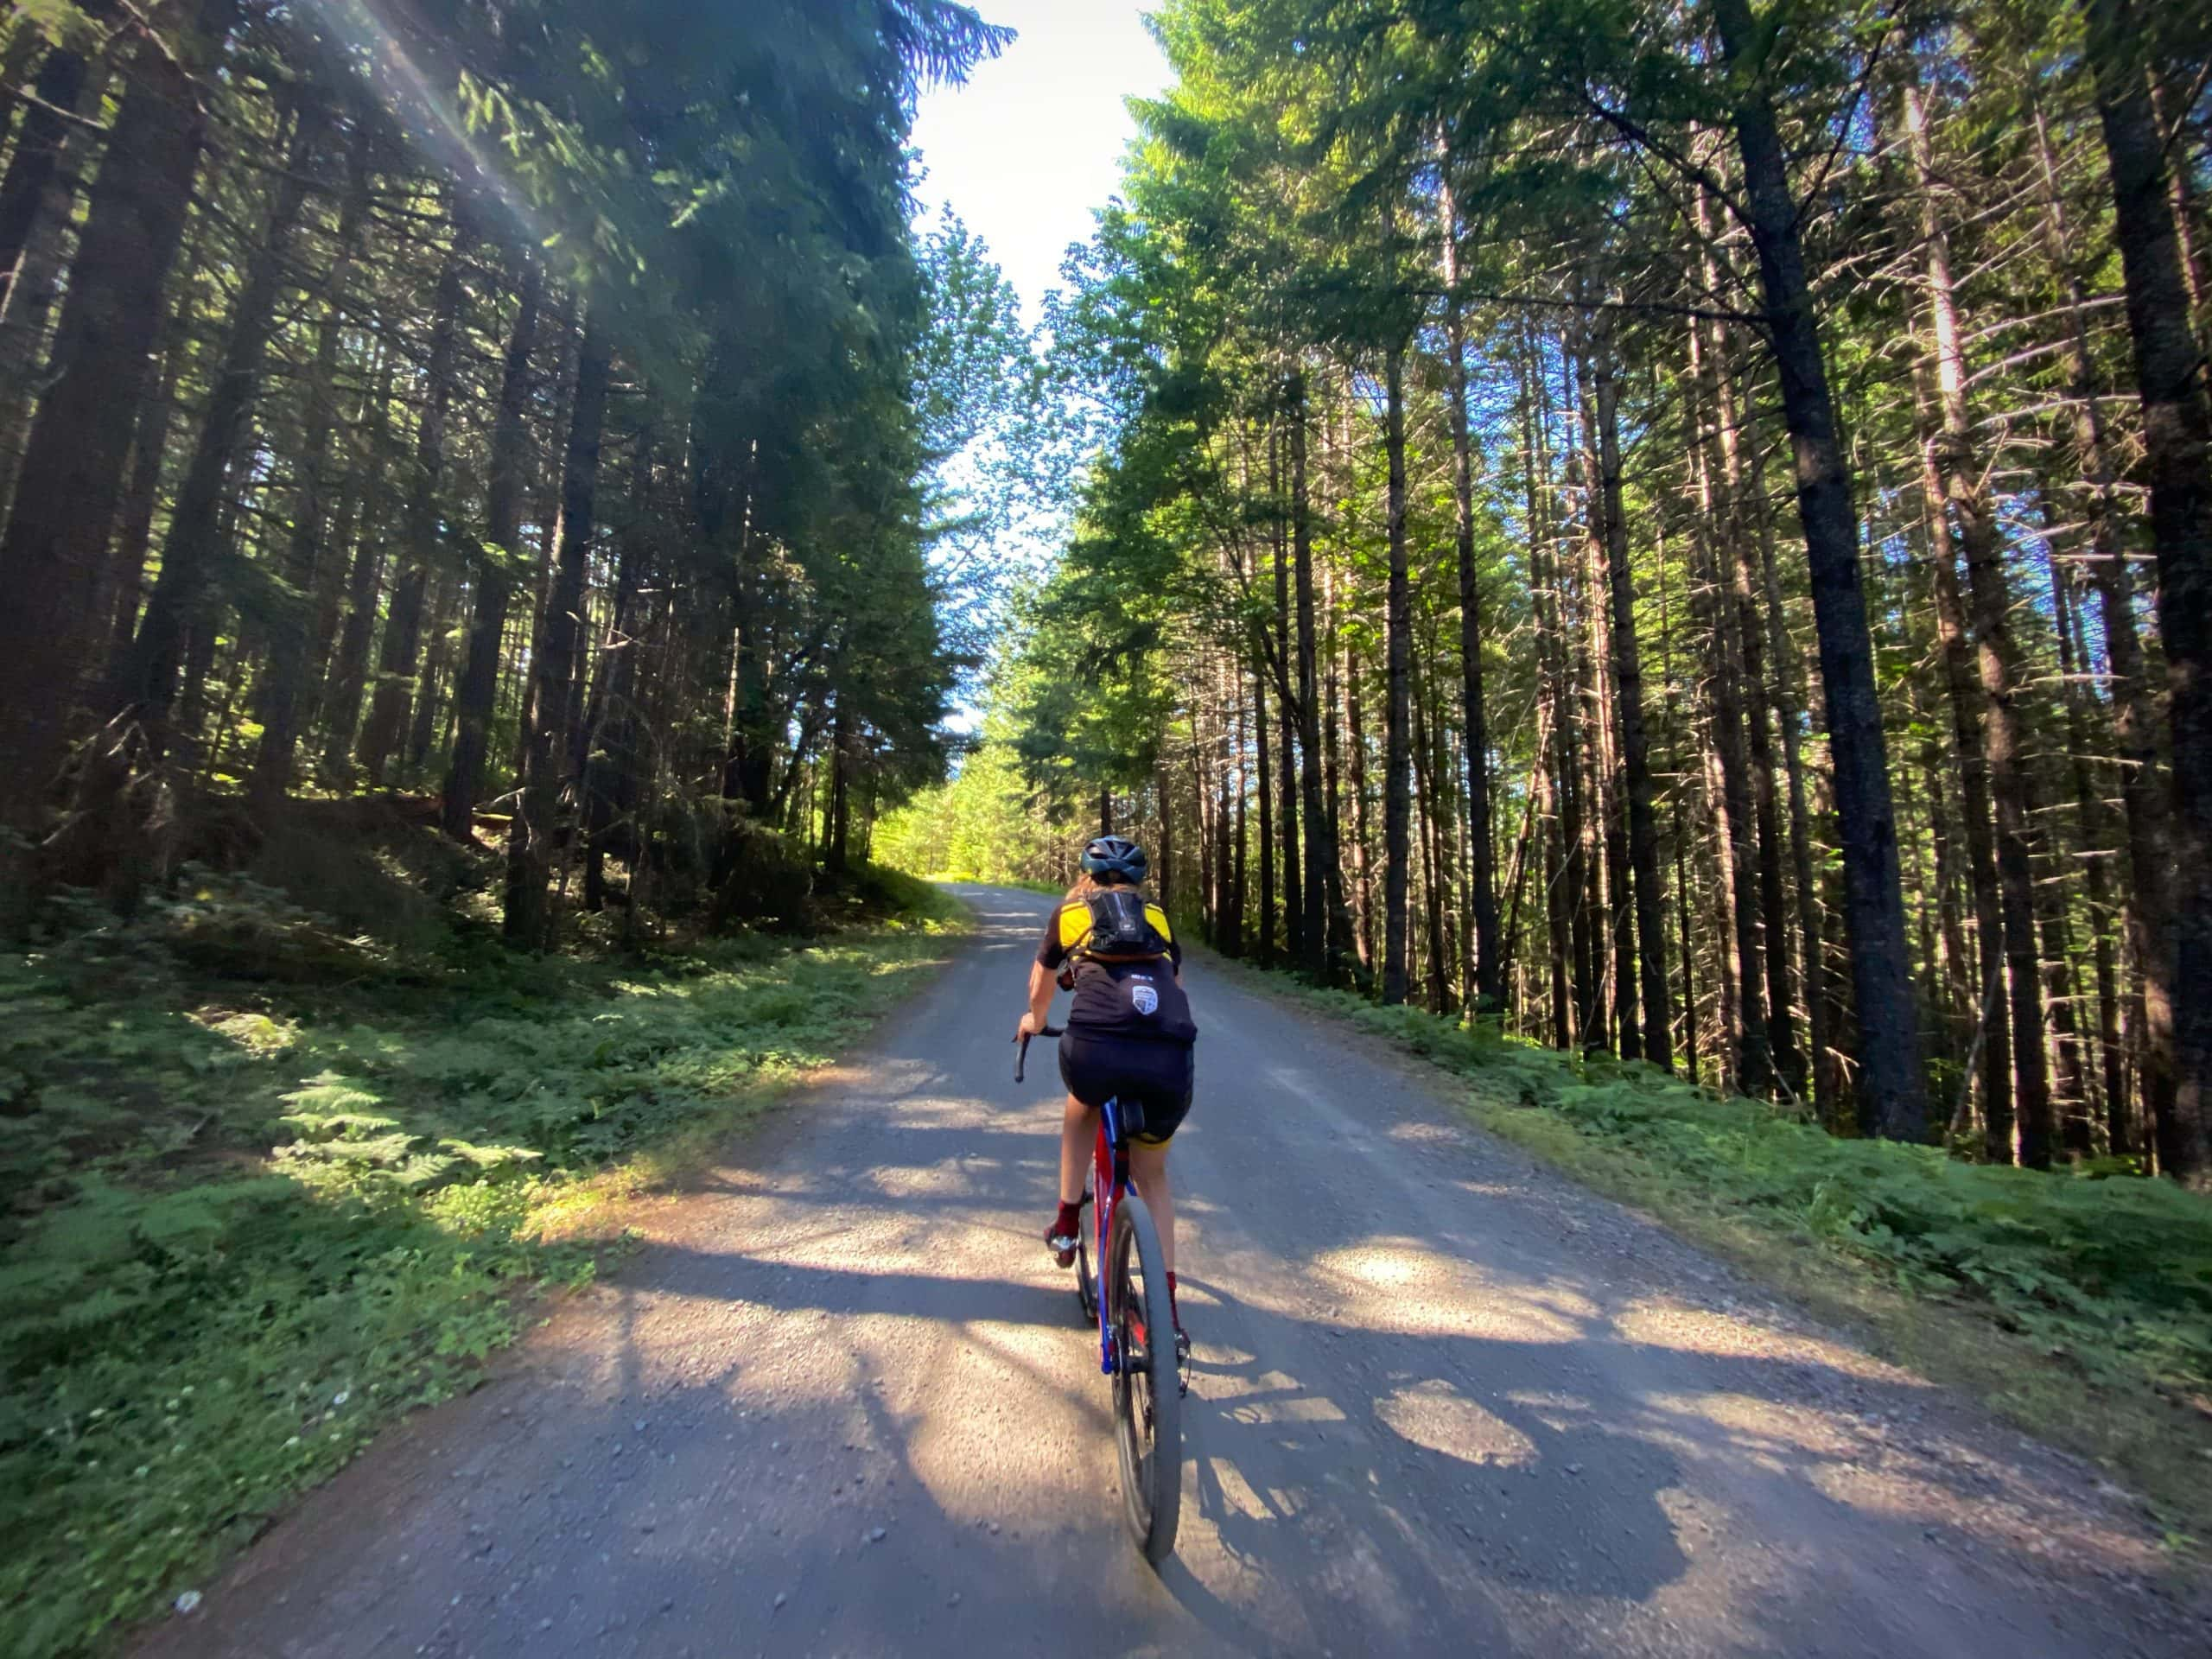 Gravel Girl on NF 2129 leading to Warner Ridge Lookout in the Willamette National Forest.